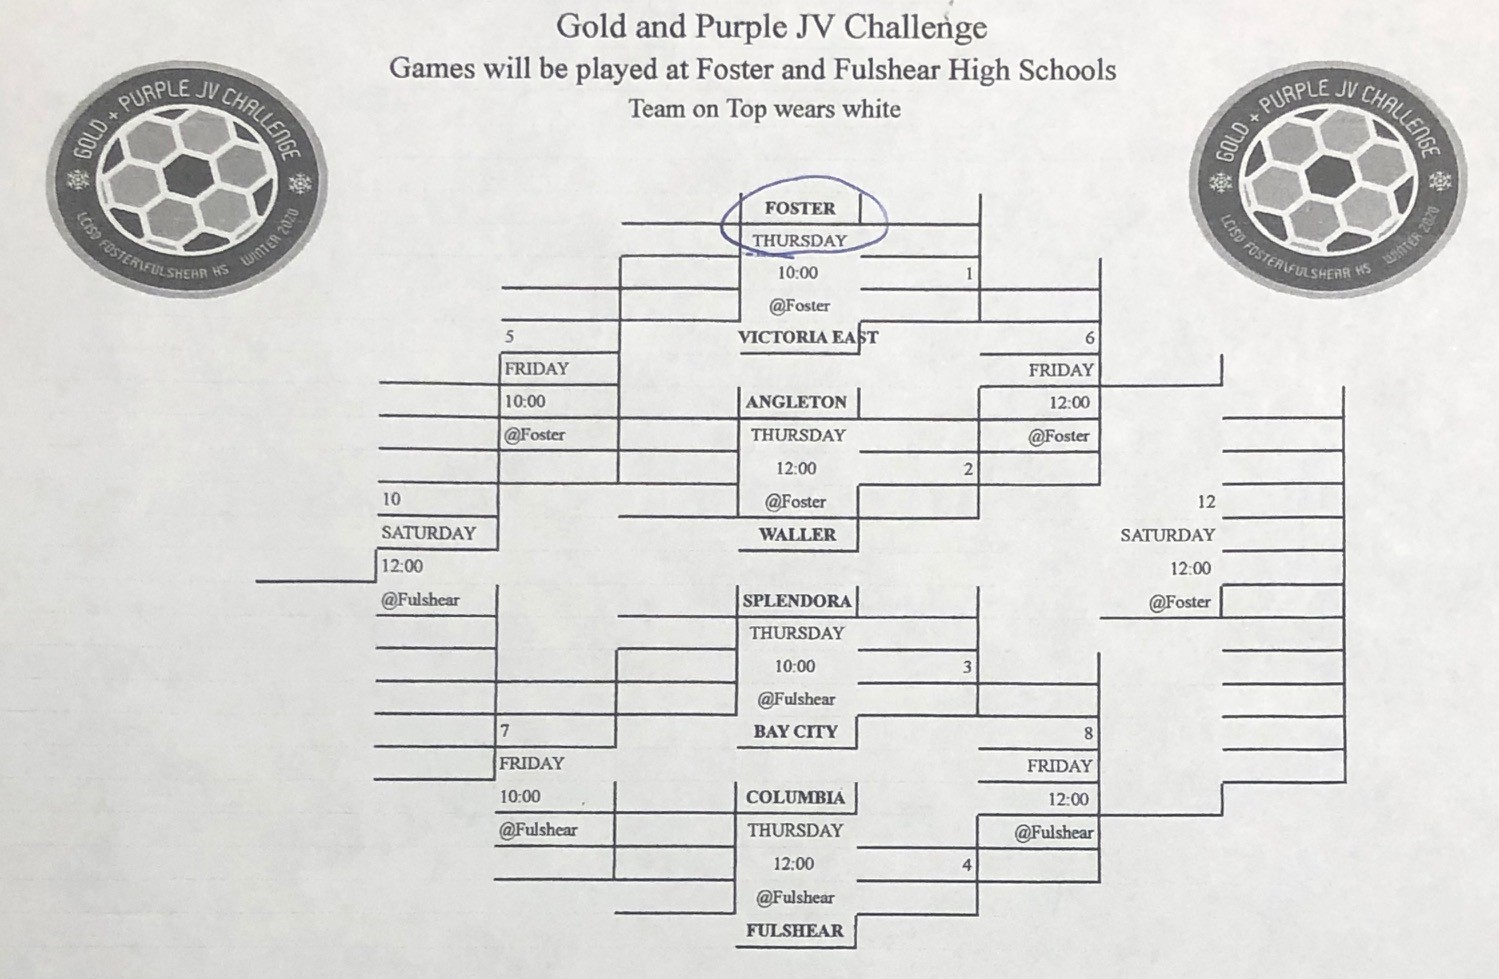 Women's Soccer, Gold and Purple JV Challenge Championship game is tomorrow at 12 at Fulshear HS